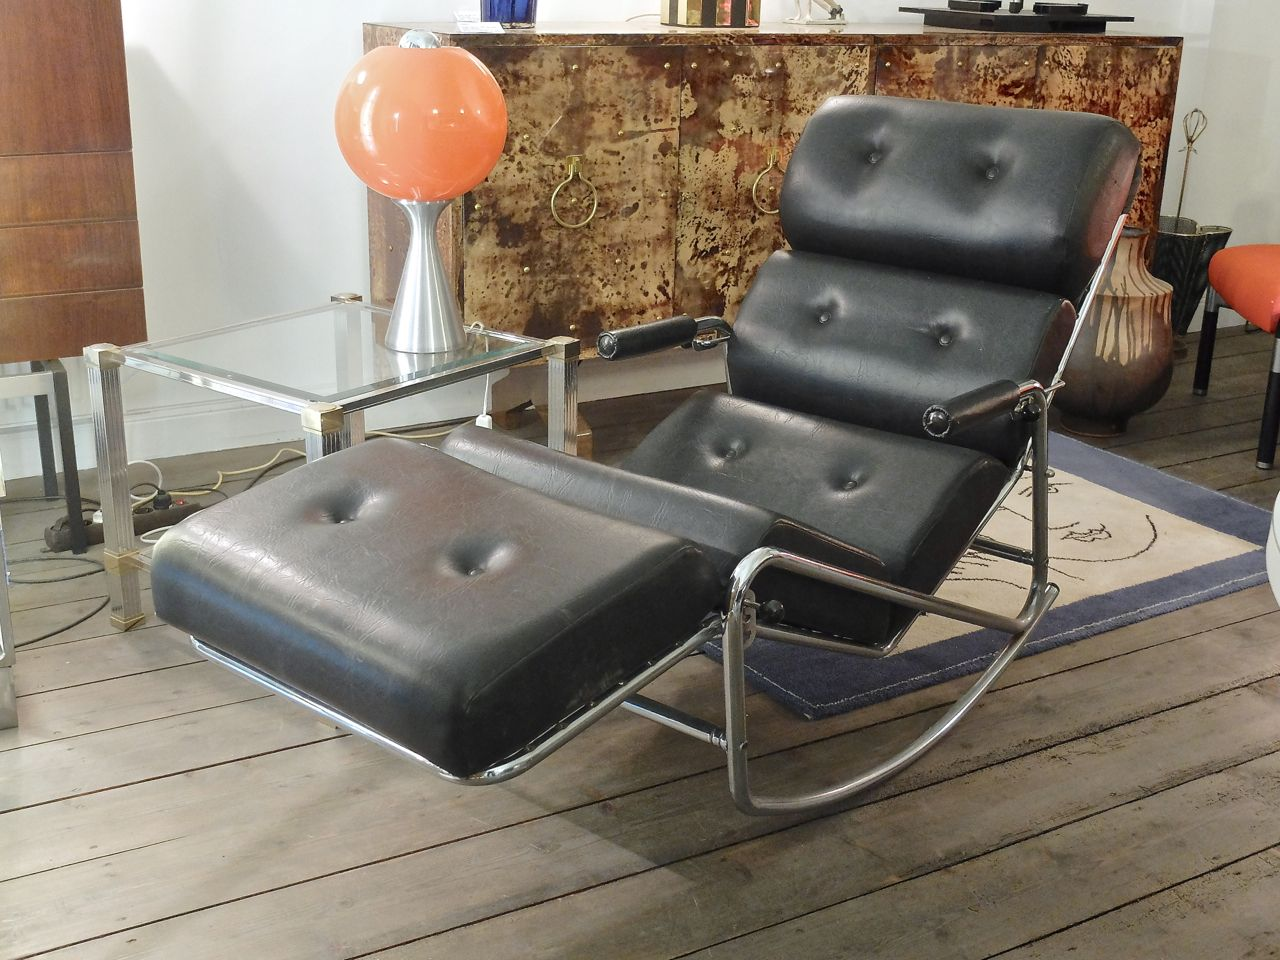 Vintage french lounge chair from lama furniture for sale for Vintage parisian lounge